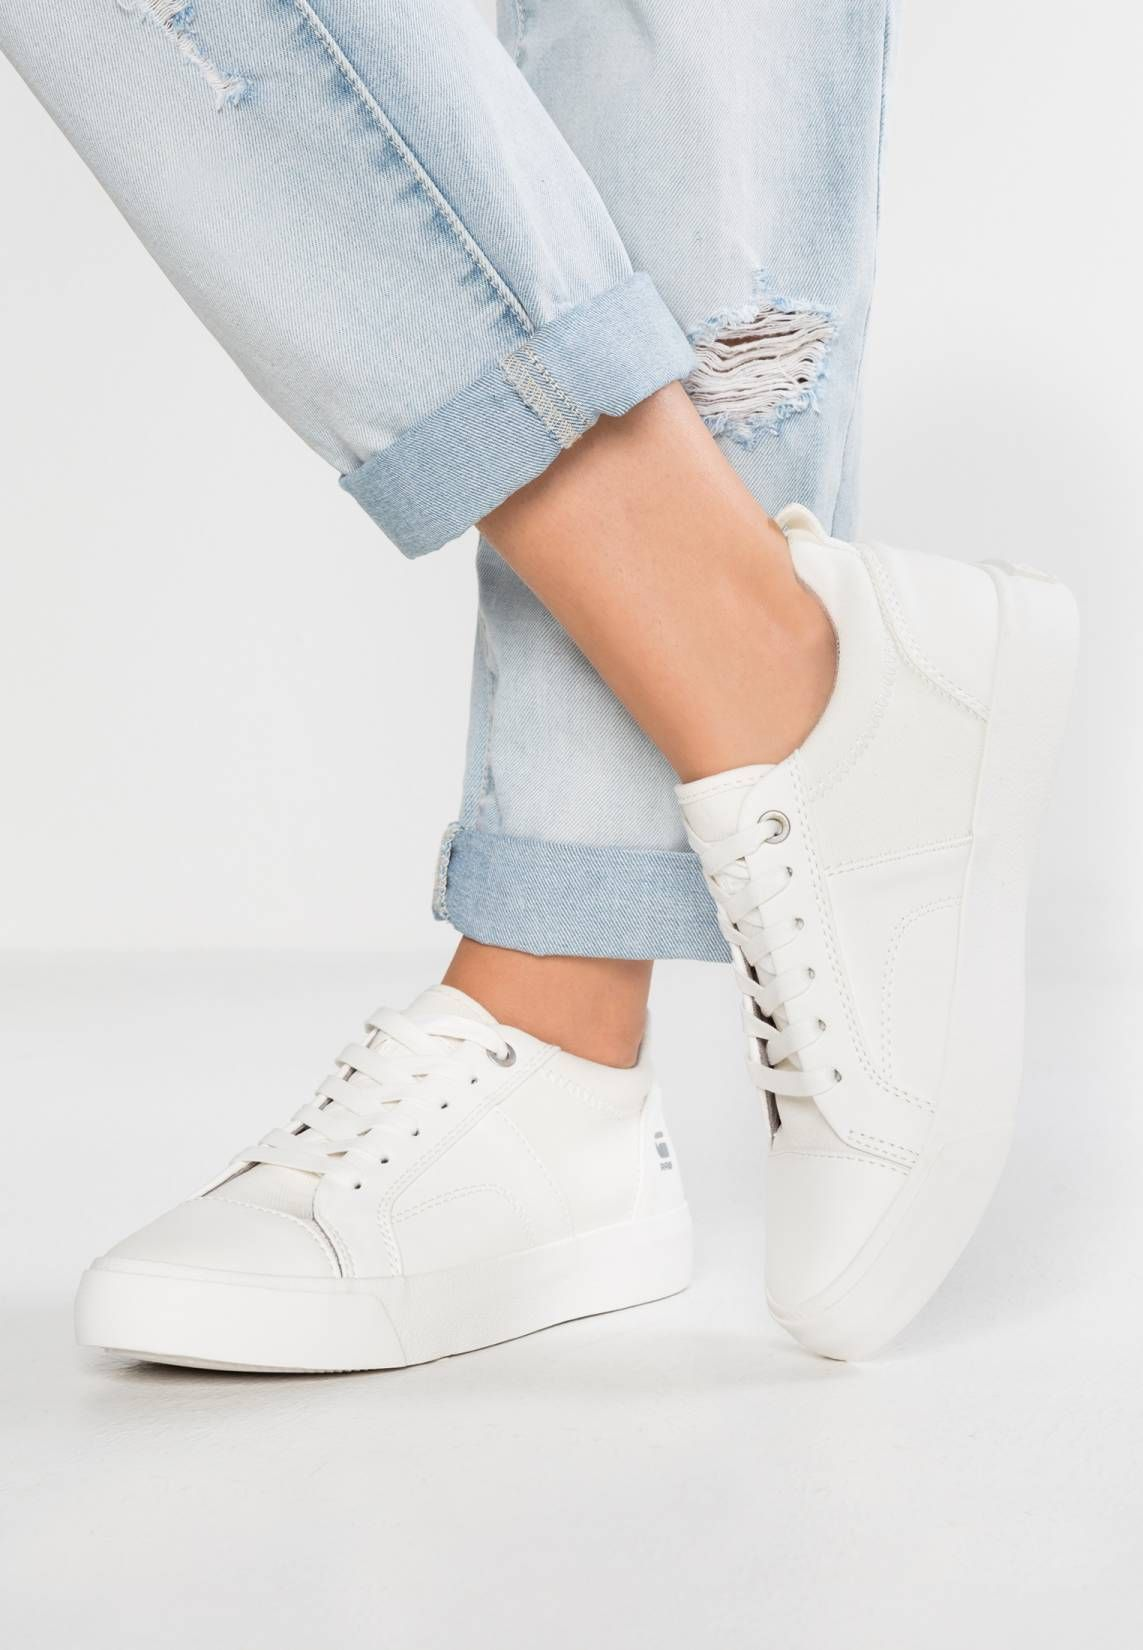 201 Best Zalando ♥ Witte Sneakers images | Sneakers, Shoes